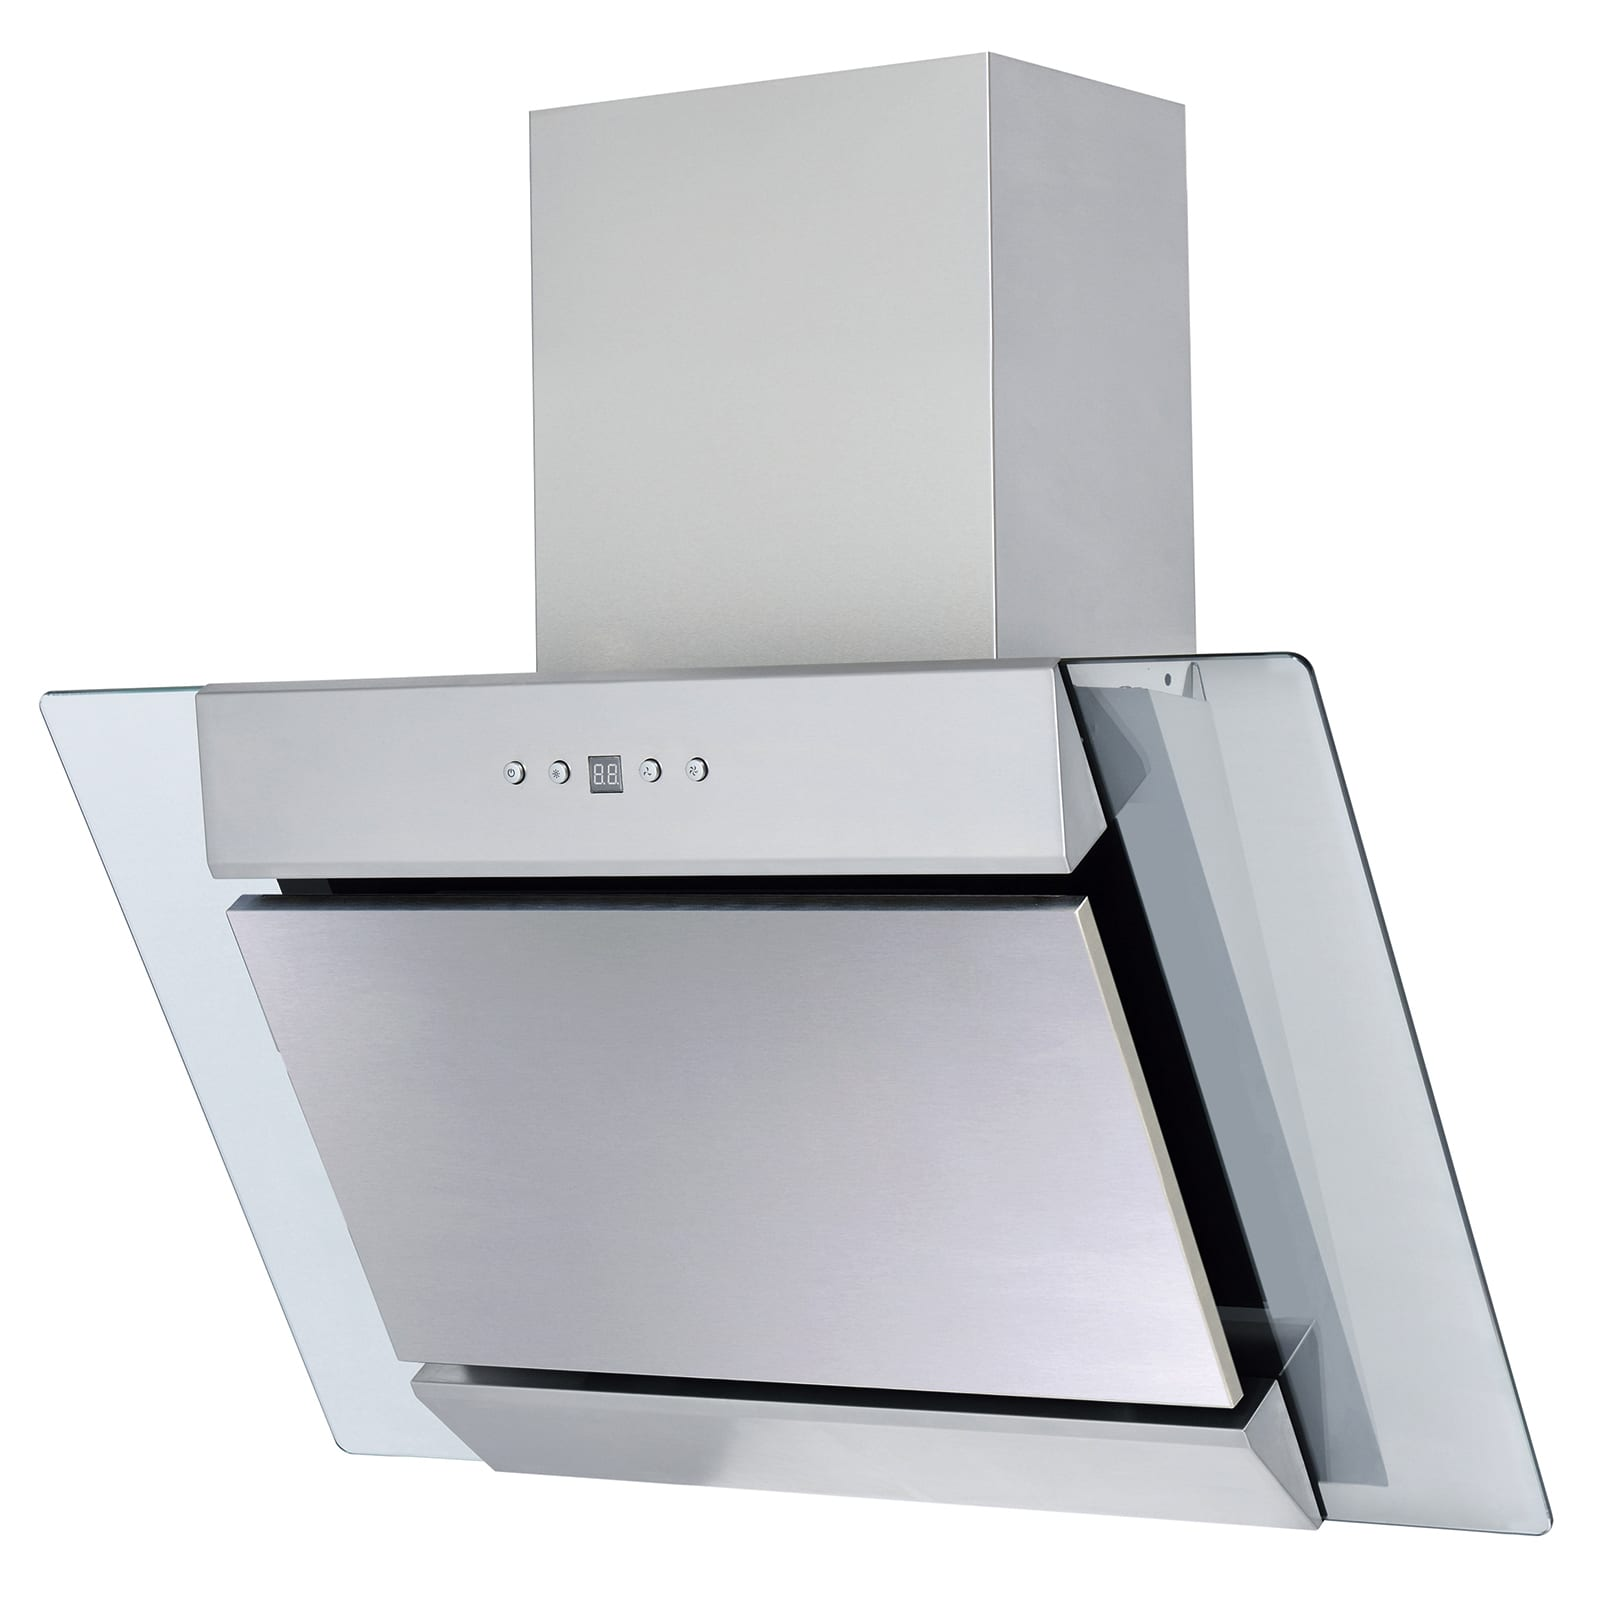 SIA AGL61SS 60cm Angled Stainless Steel Chimney Cooker